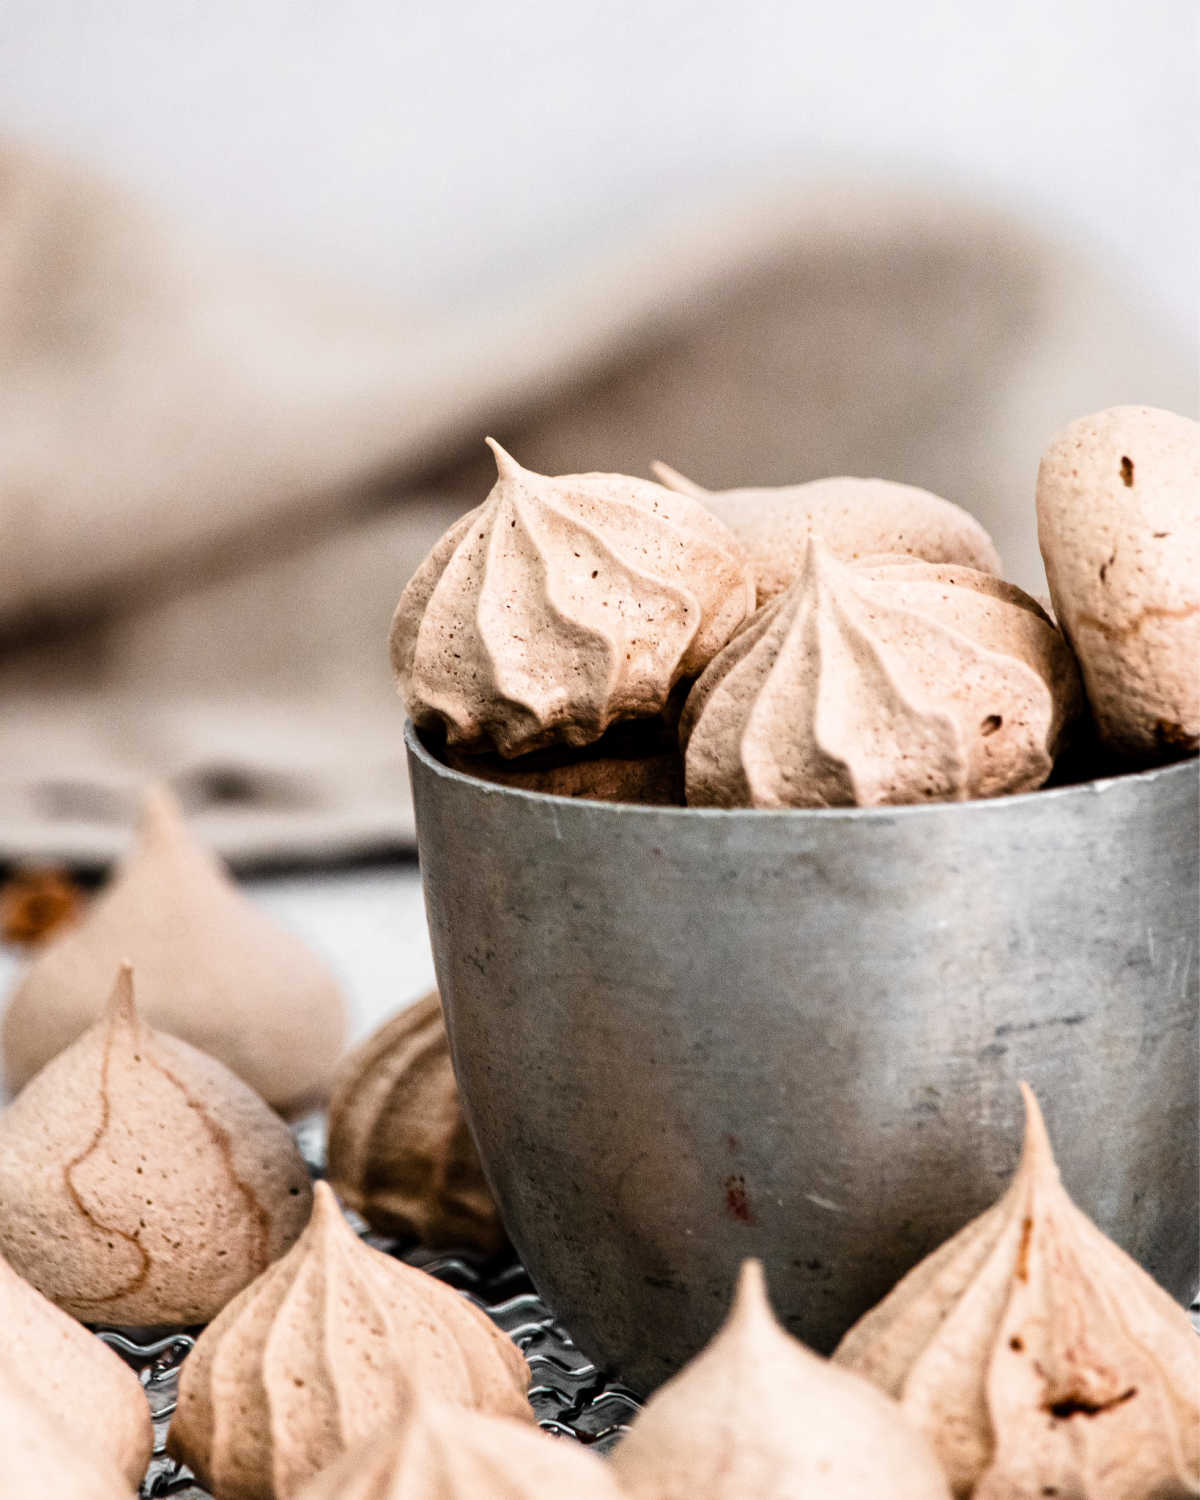 The finished Chocolate Meringue Cookies recipe in a cup.